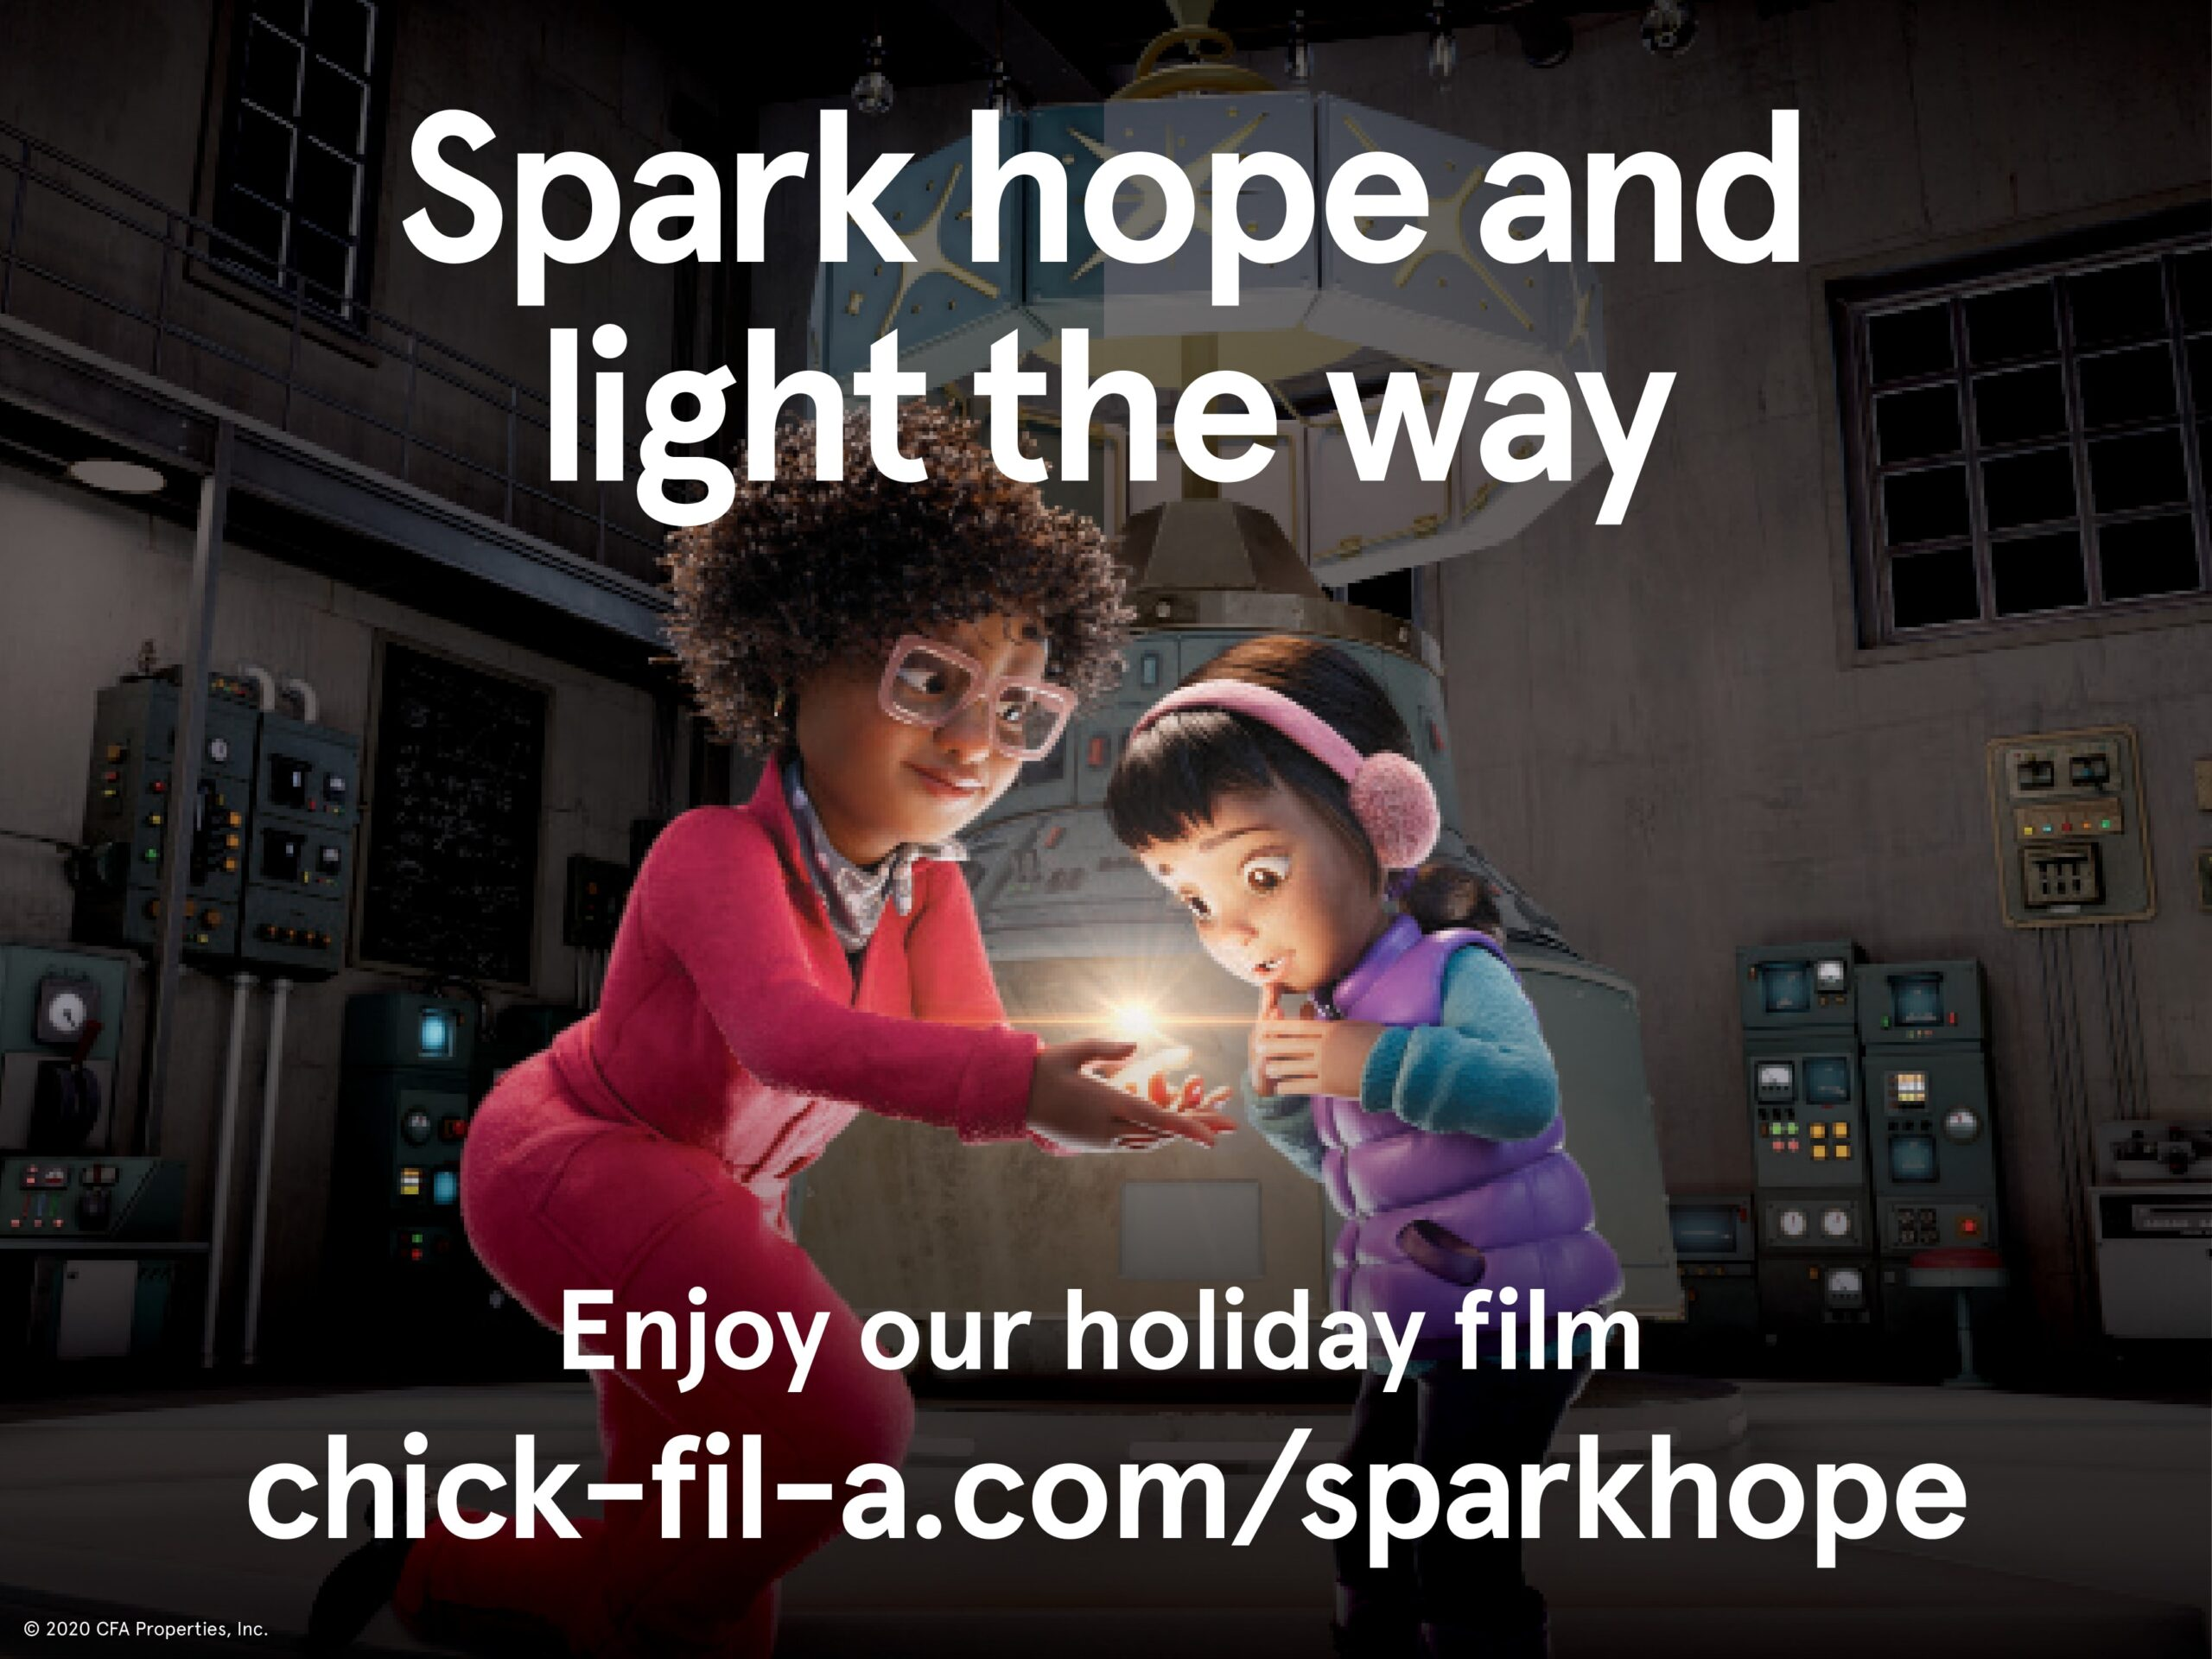 Chick-fil-A Holiday Film